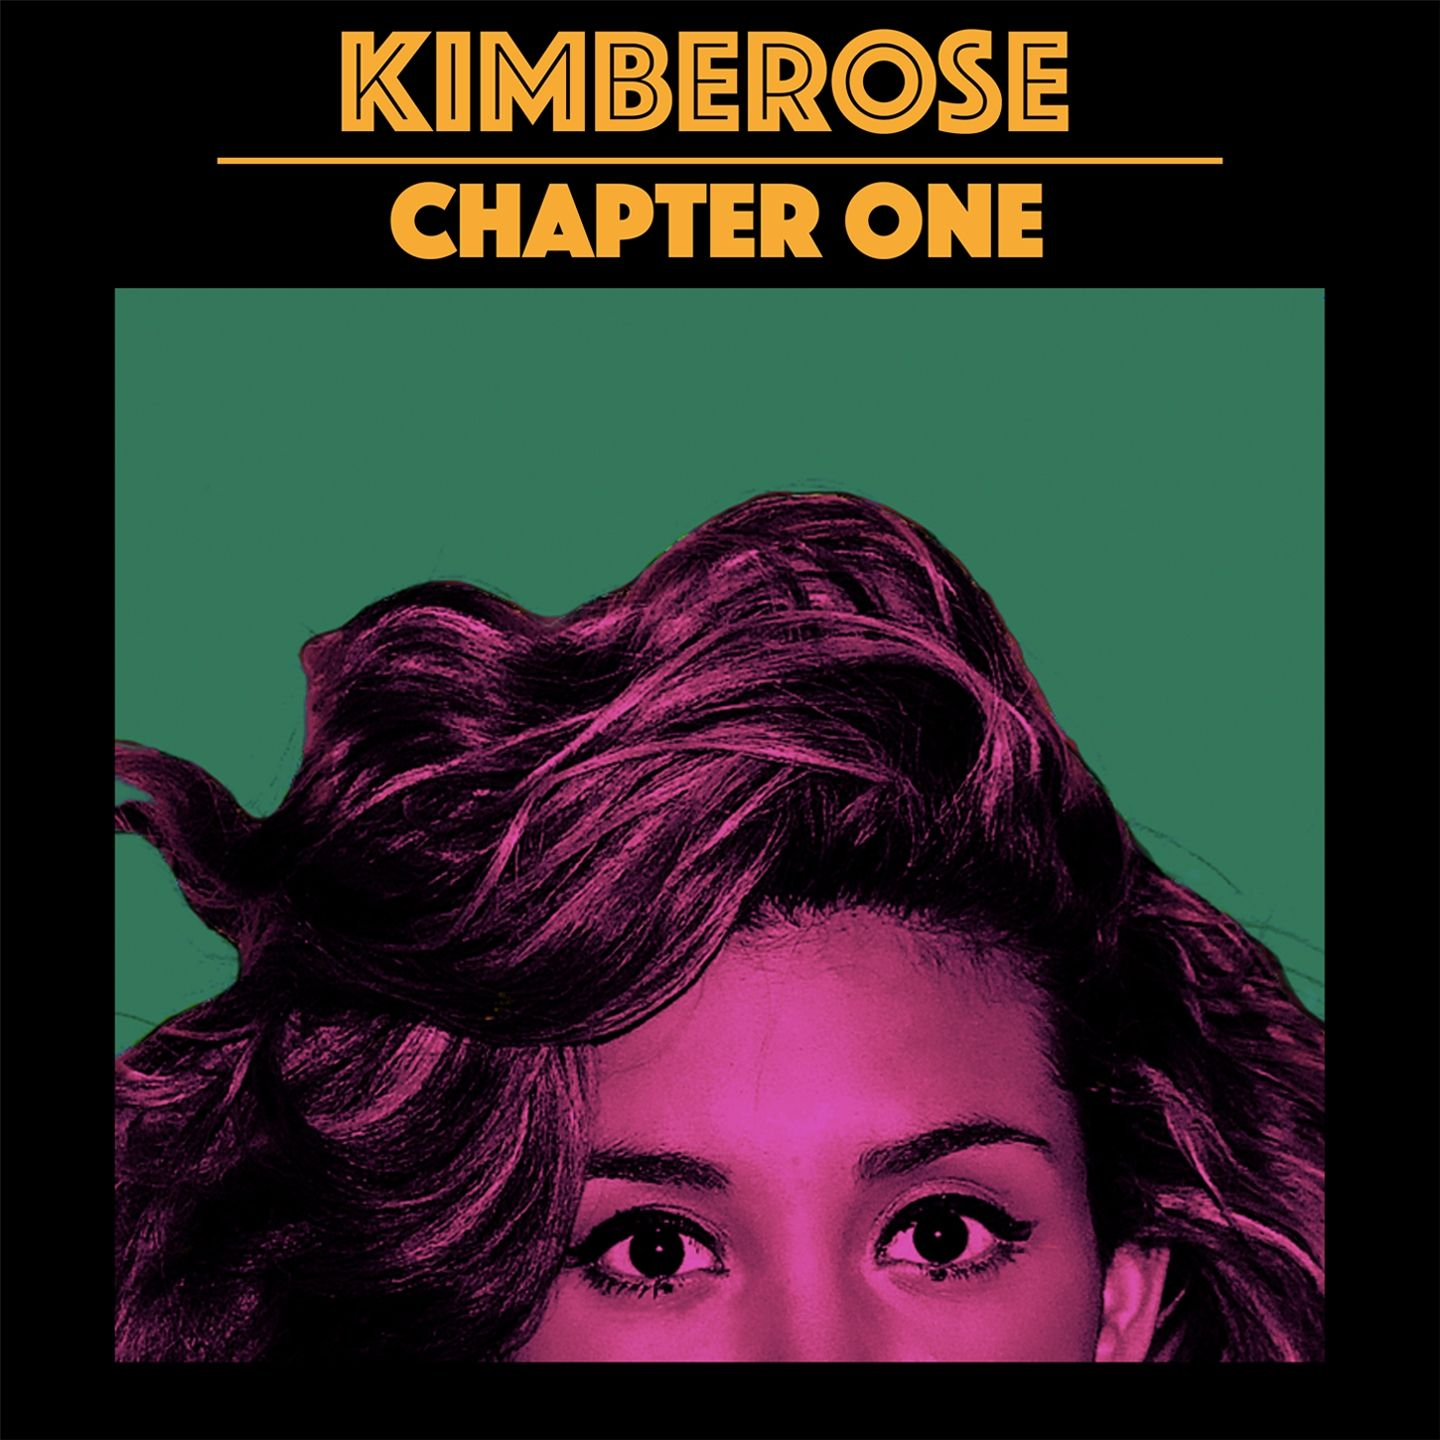 Kimberose - Chapter One album cover